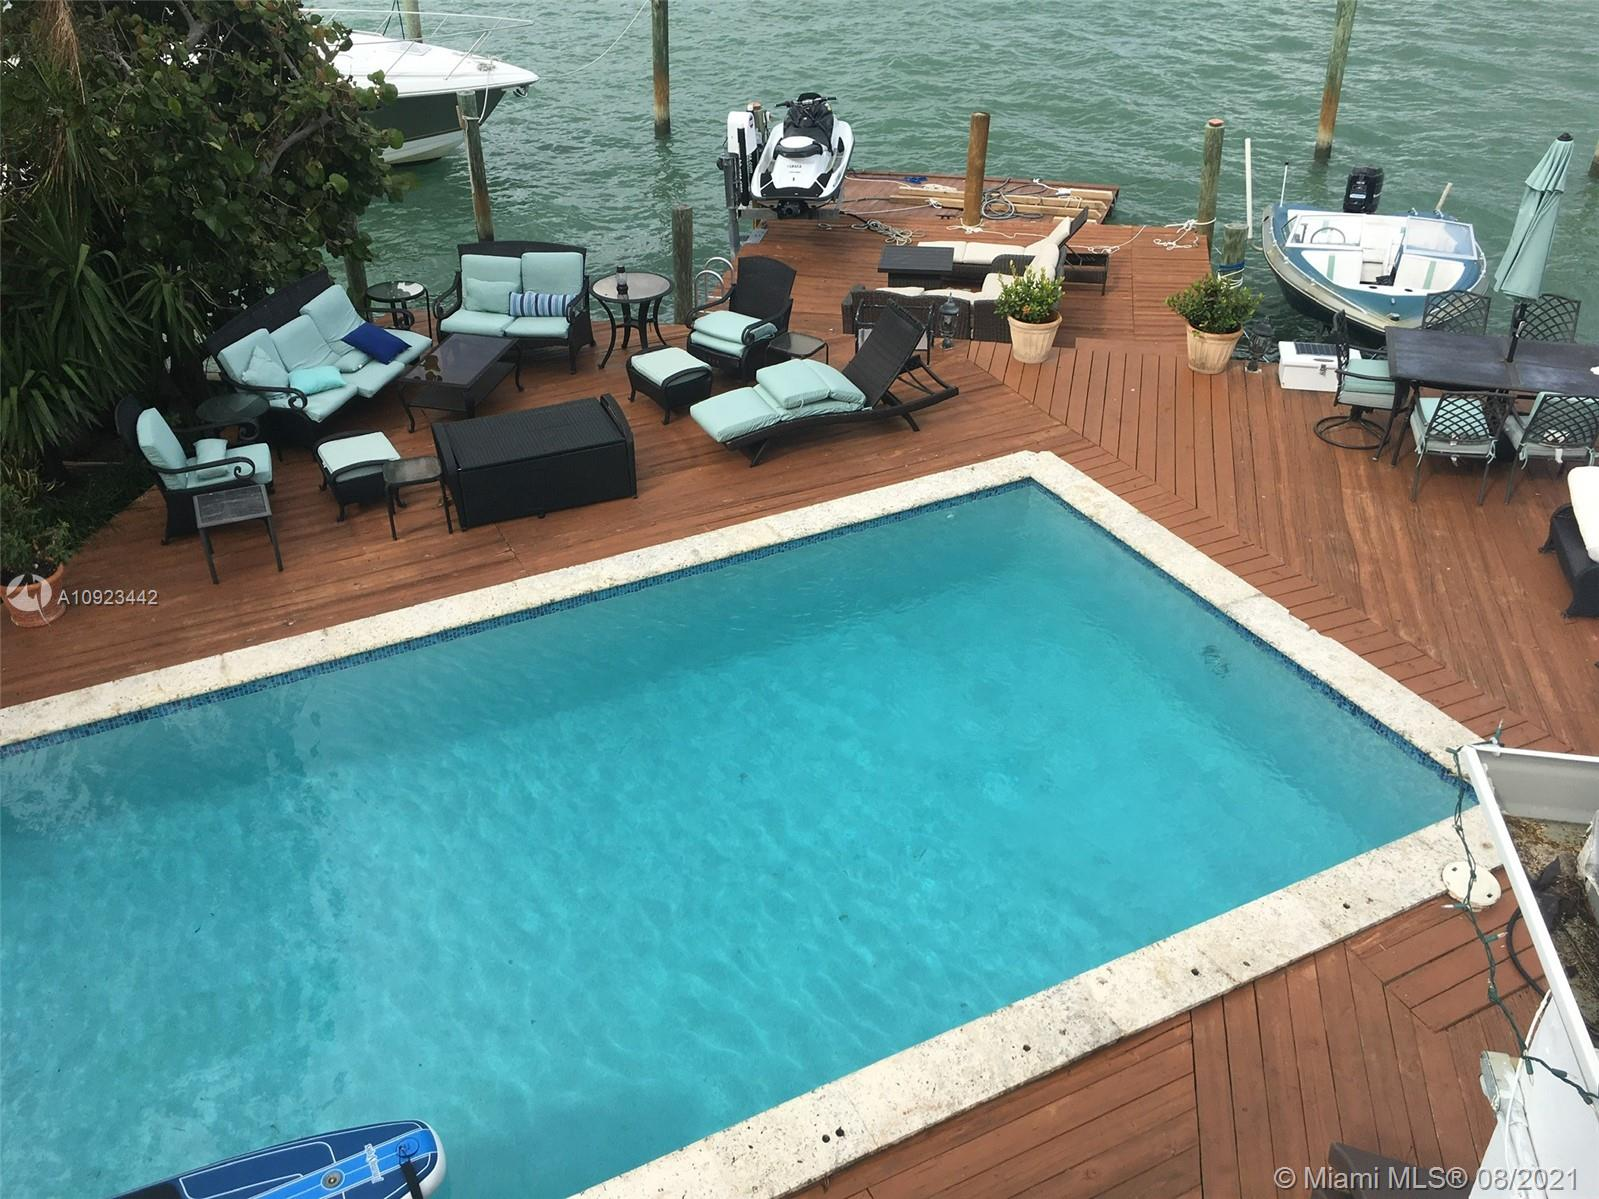 This 4/4 wide bay waterfront home with a dock, boat lift and jet ski lift has amazing wide bay view of sunrise, sunset, marine life, Indian creek Island and sits near the end of a cul de sac on Miami Beach's stillwater Drive. Paddleboard to sand bar in front of the house. Close to Bal Harbour Shops and South Beach. Walk to beach and jet ski or kayak to Haulover sandbar or around the island. Park for digs and kids at the end of the block.  Great location. Also available for rent at $12,500/month. May be rented furnished or not furnished.